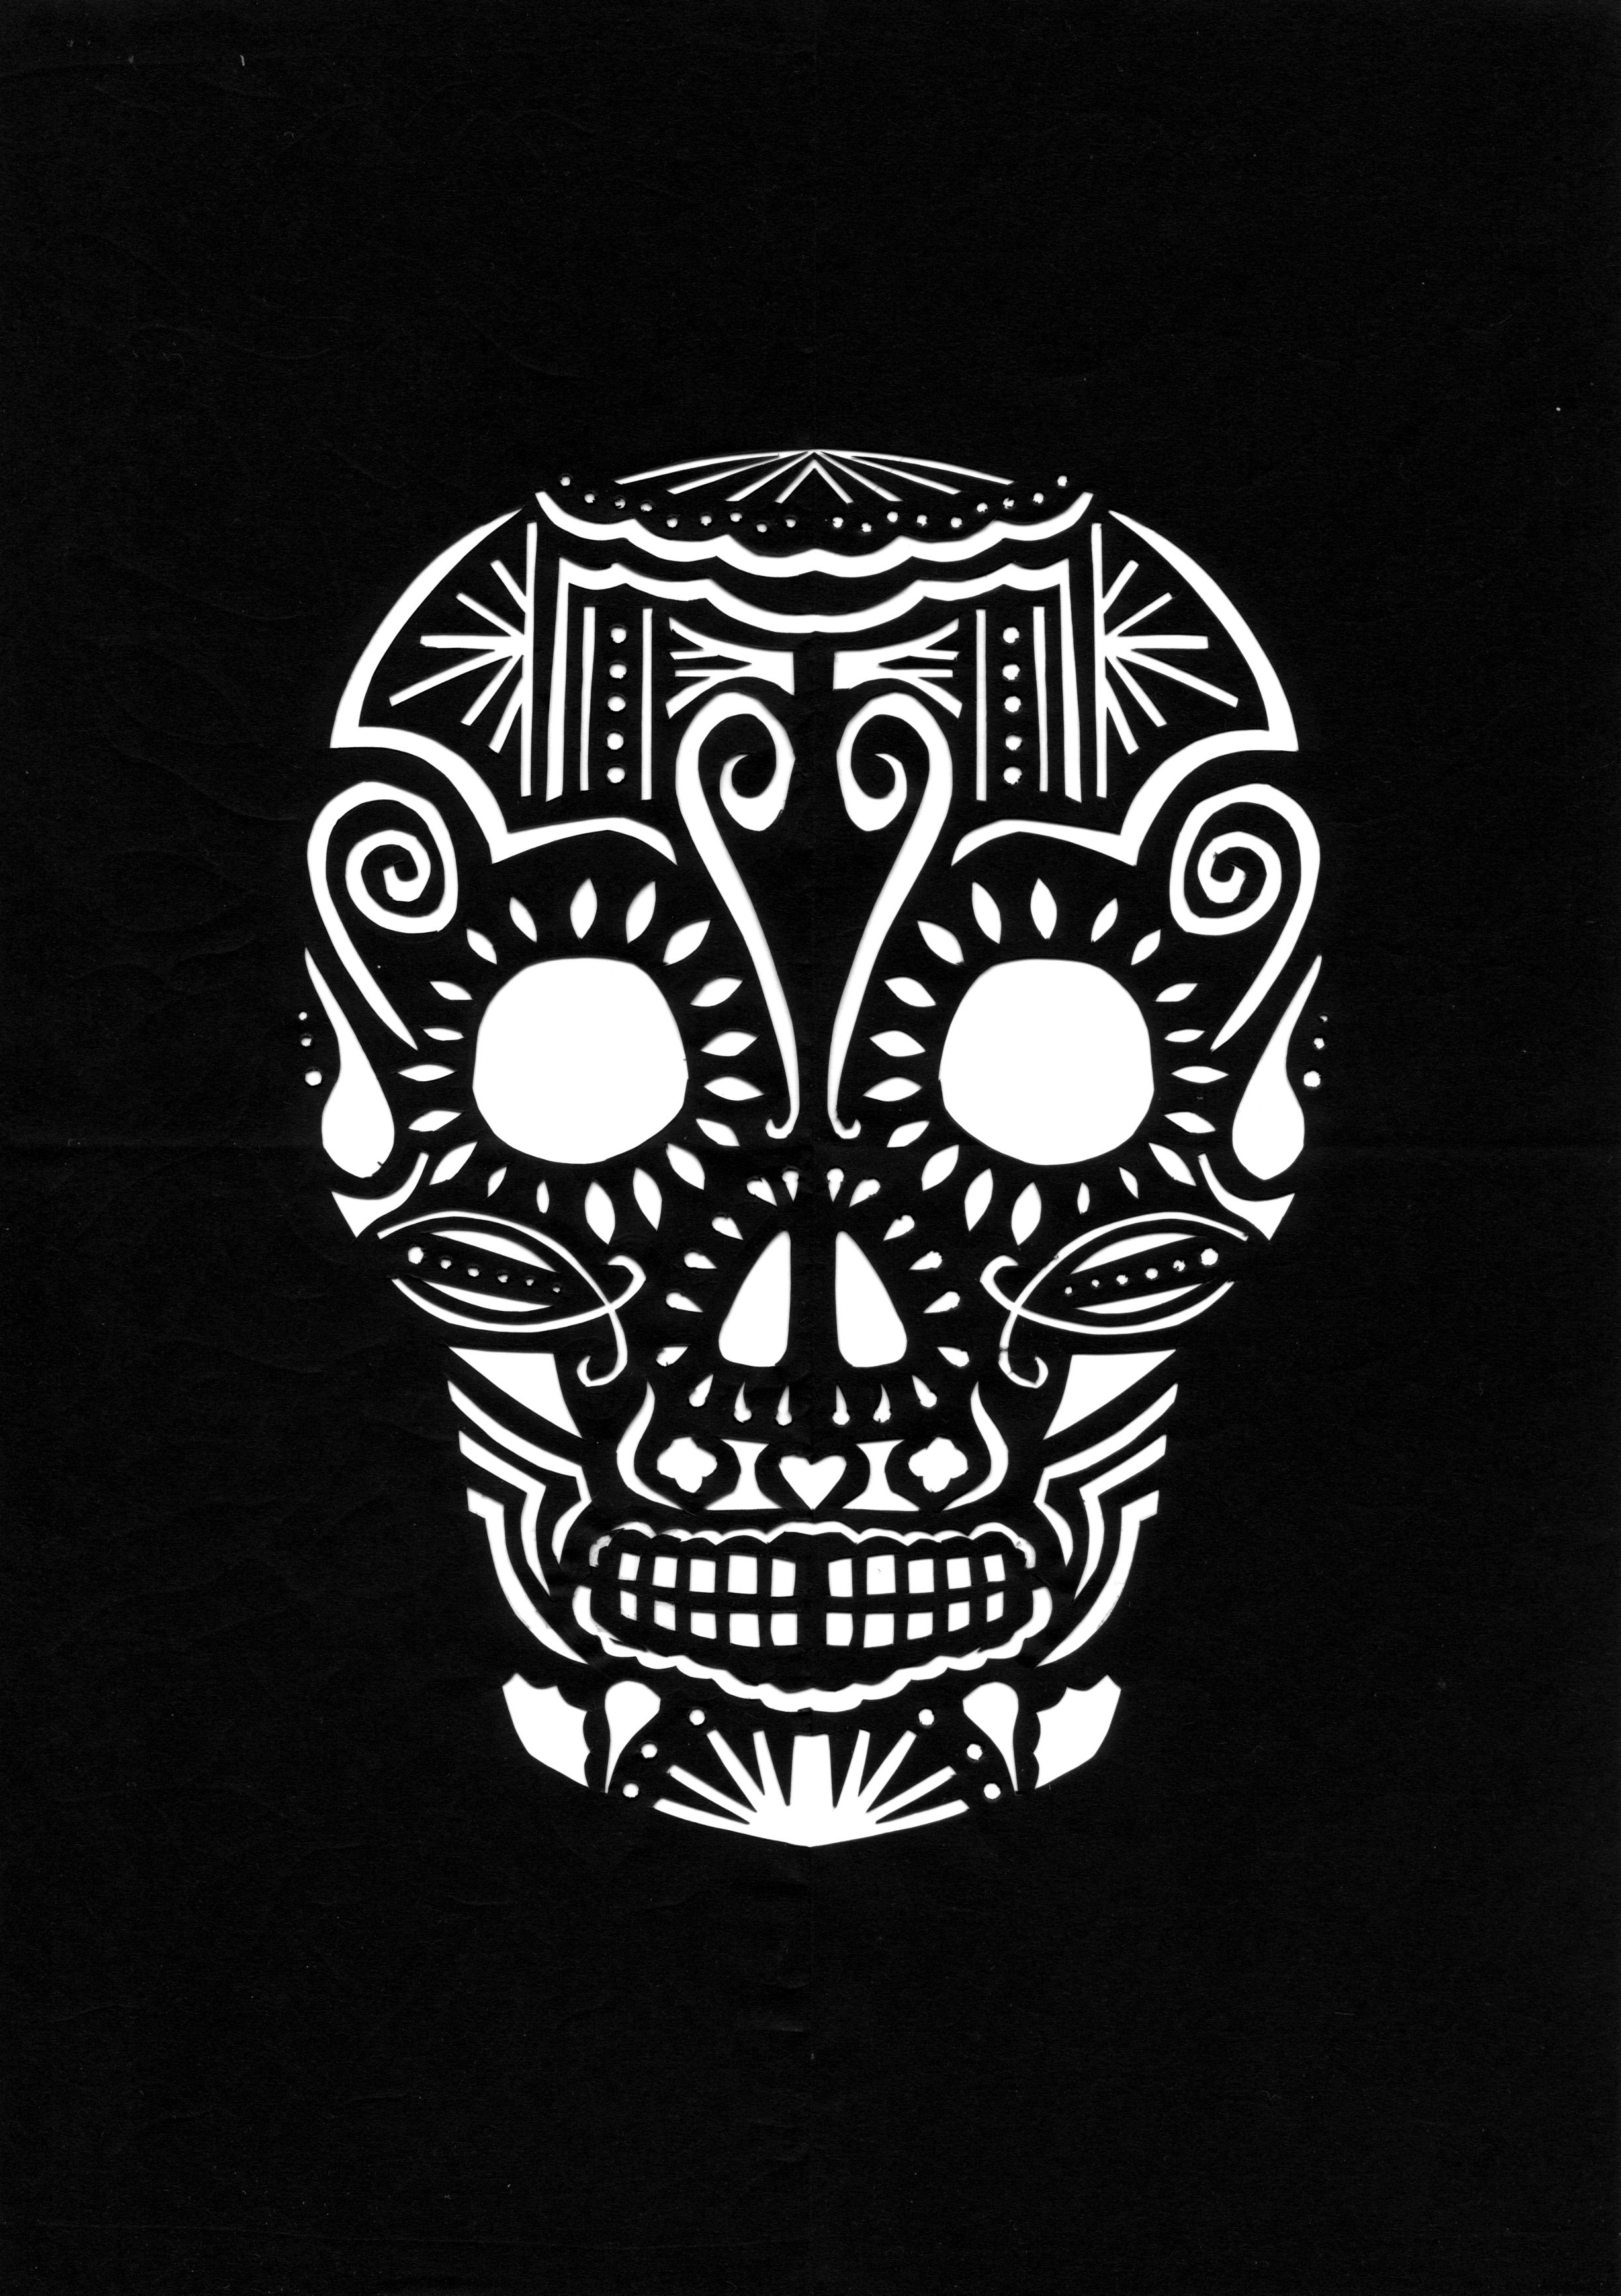 day of dead skull template day of the dead skull png download 19102757 free template skull day dead of